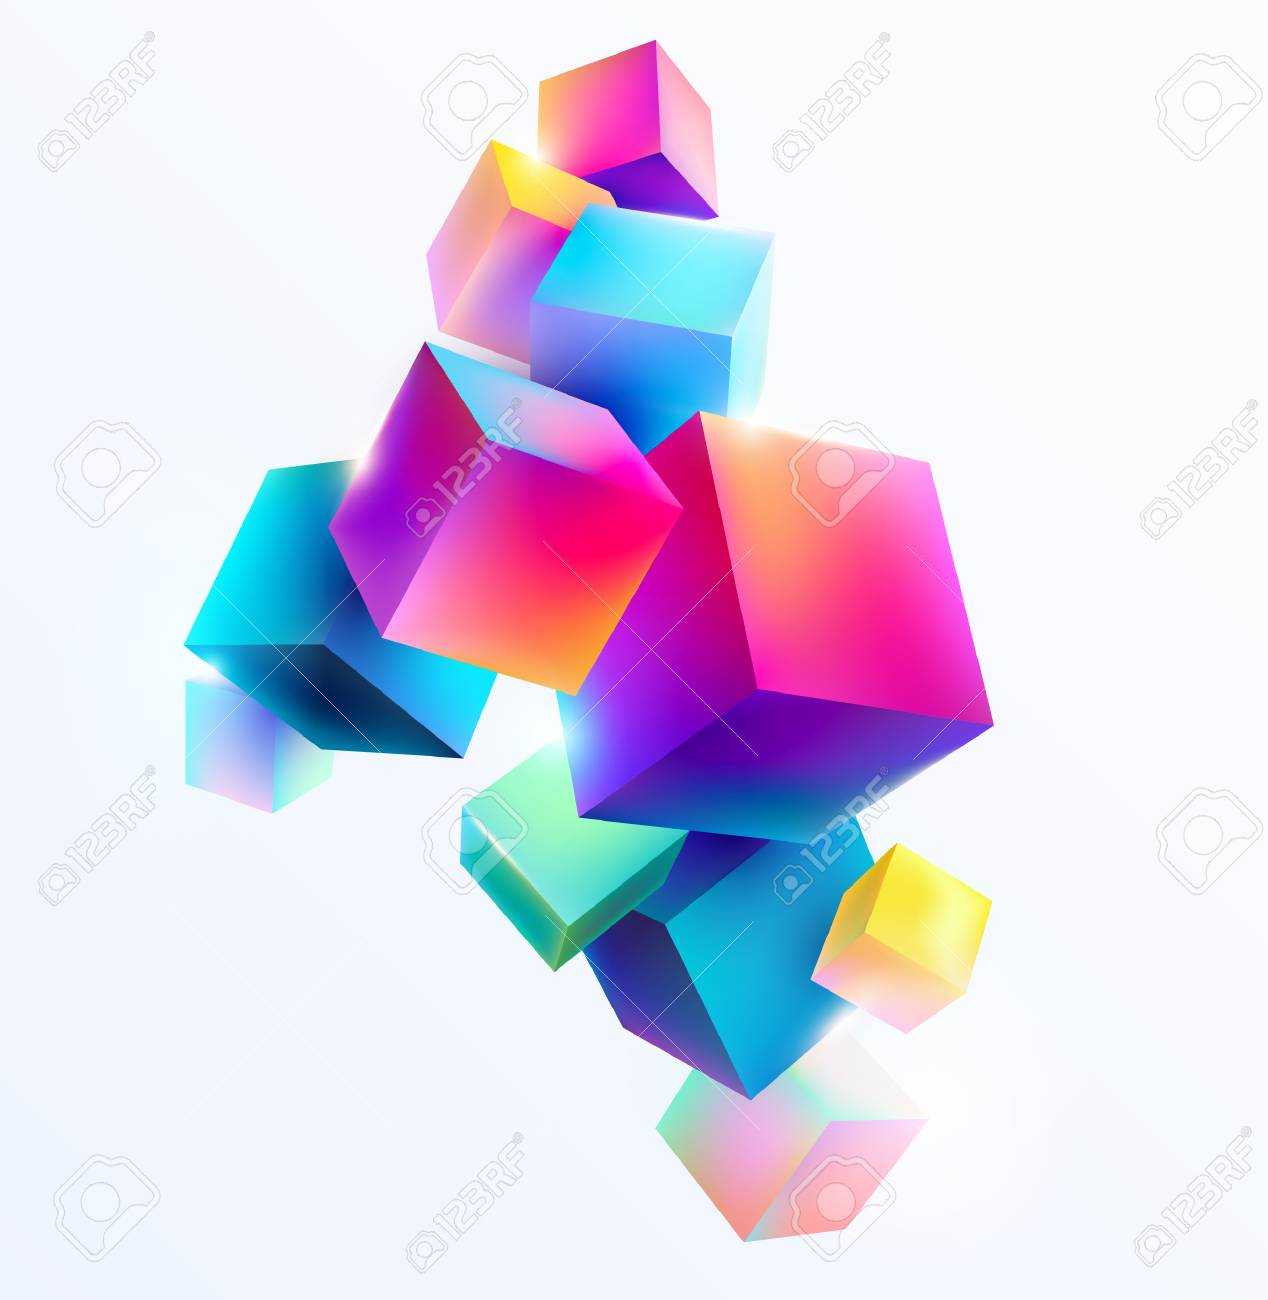 Abstract colorful composition with 3d cubes - 95587032